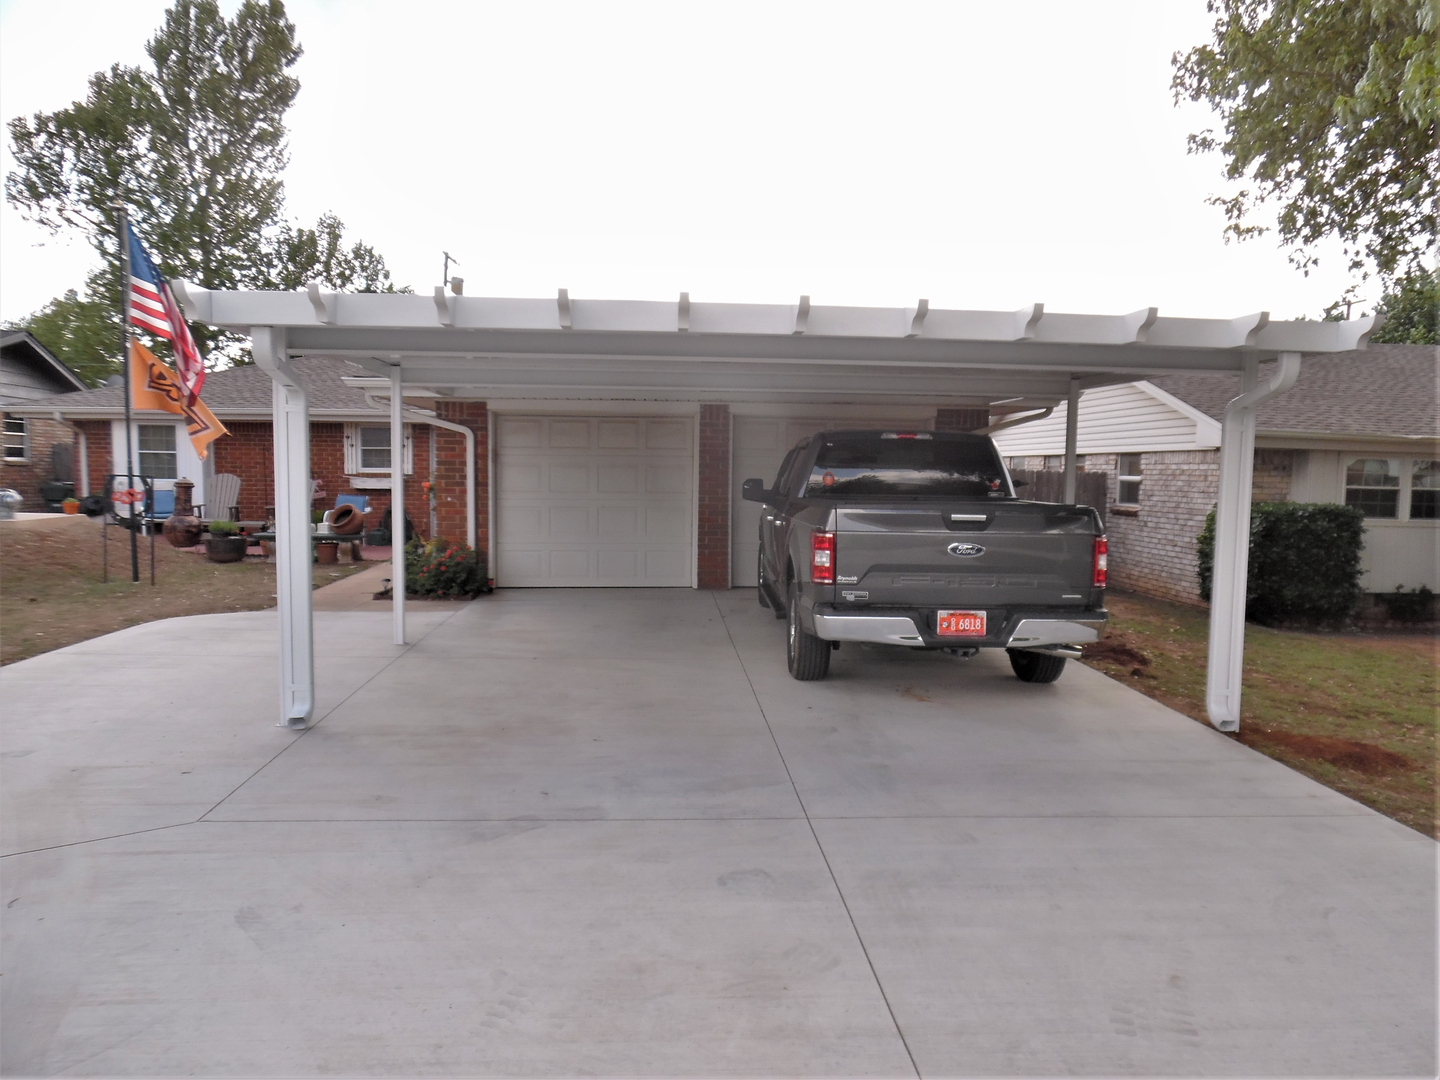 Carports of Oklahoma - Home Page - Welcome on mobile home steps, mobile home apartments, mobile home stairs plans, mobile home attics, mobile home patio covers, mobile home dealers tx, mobile home glass, mobile home fencing, mobile home pool, mobile home awnings, mobile home decks, mobile home additions, mobile home playhouses, mobile home attached to house, mobile home staircases, mobile home skirting, mobile home foundations, mobile home electrical, mobile home doors, mobile home demolition,